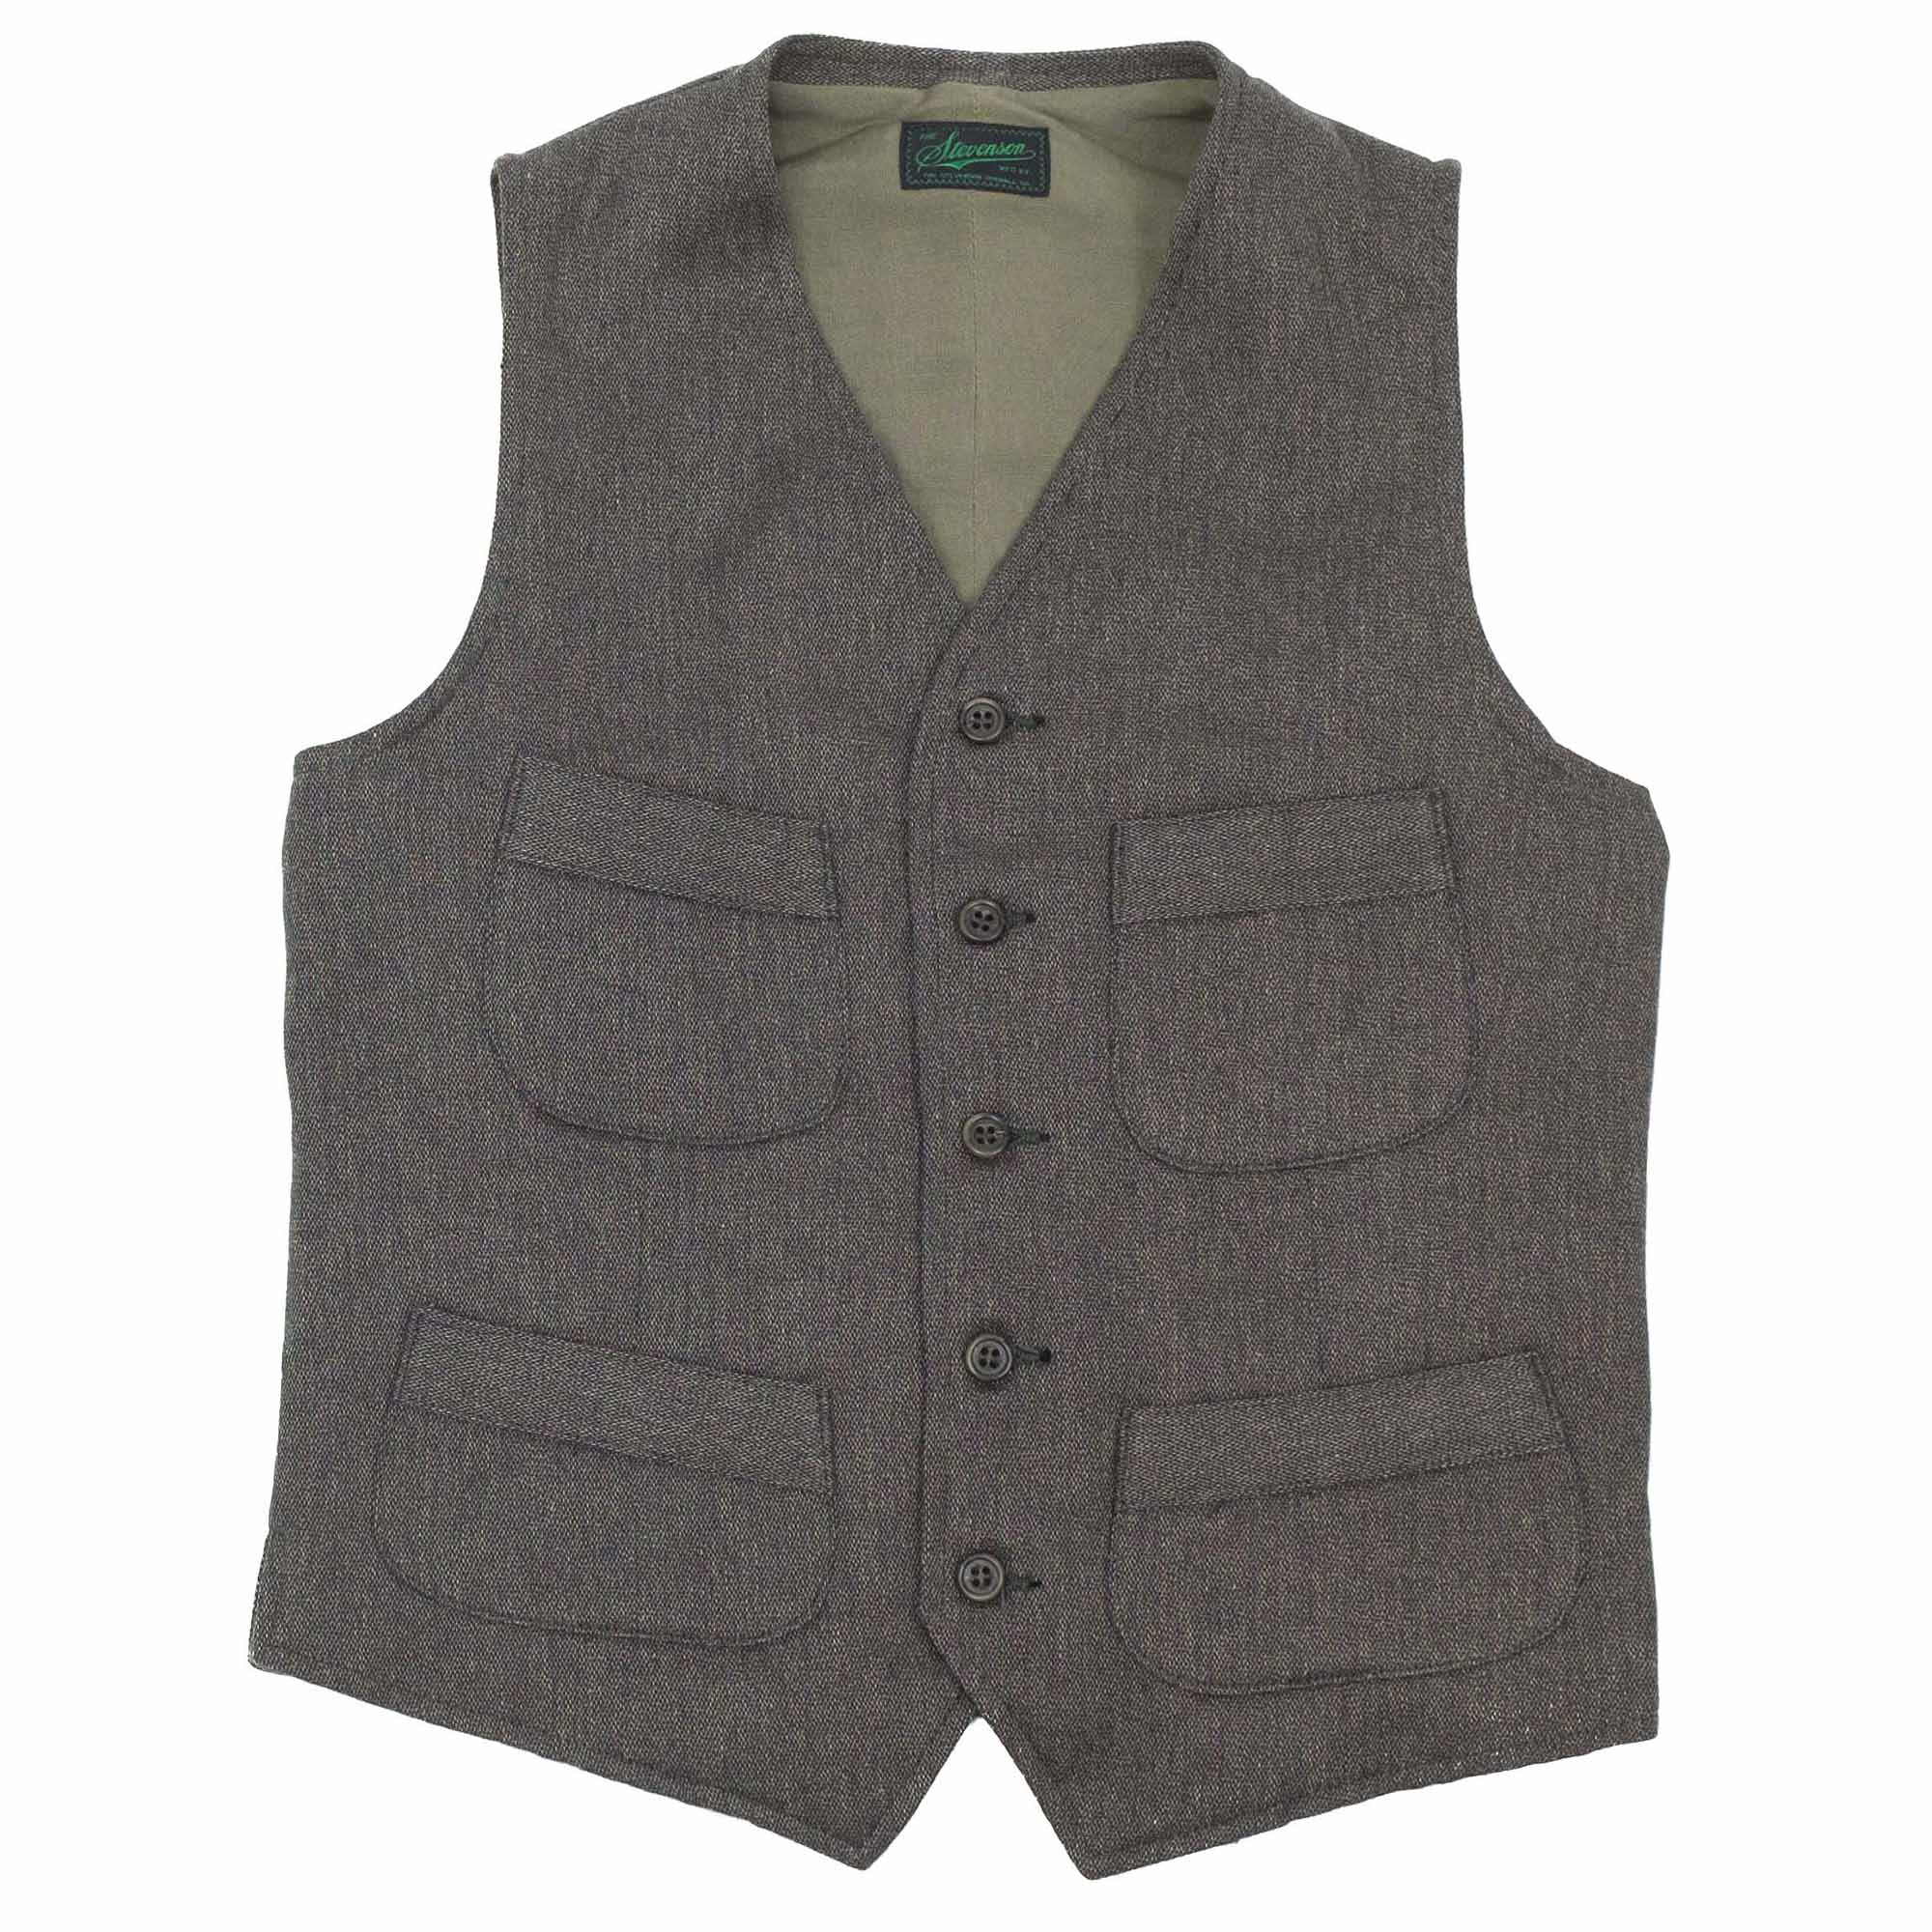 Stevenson Overall Co. Huntsman Vest - Charcoal Heather